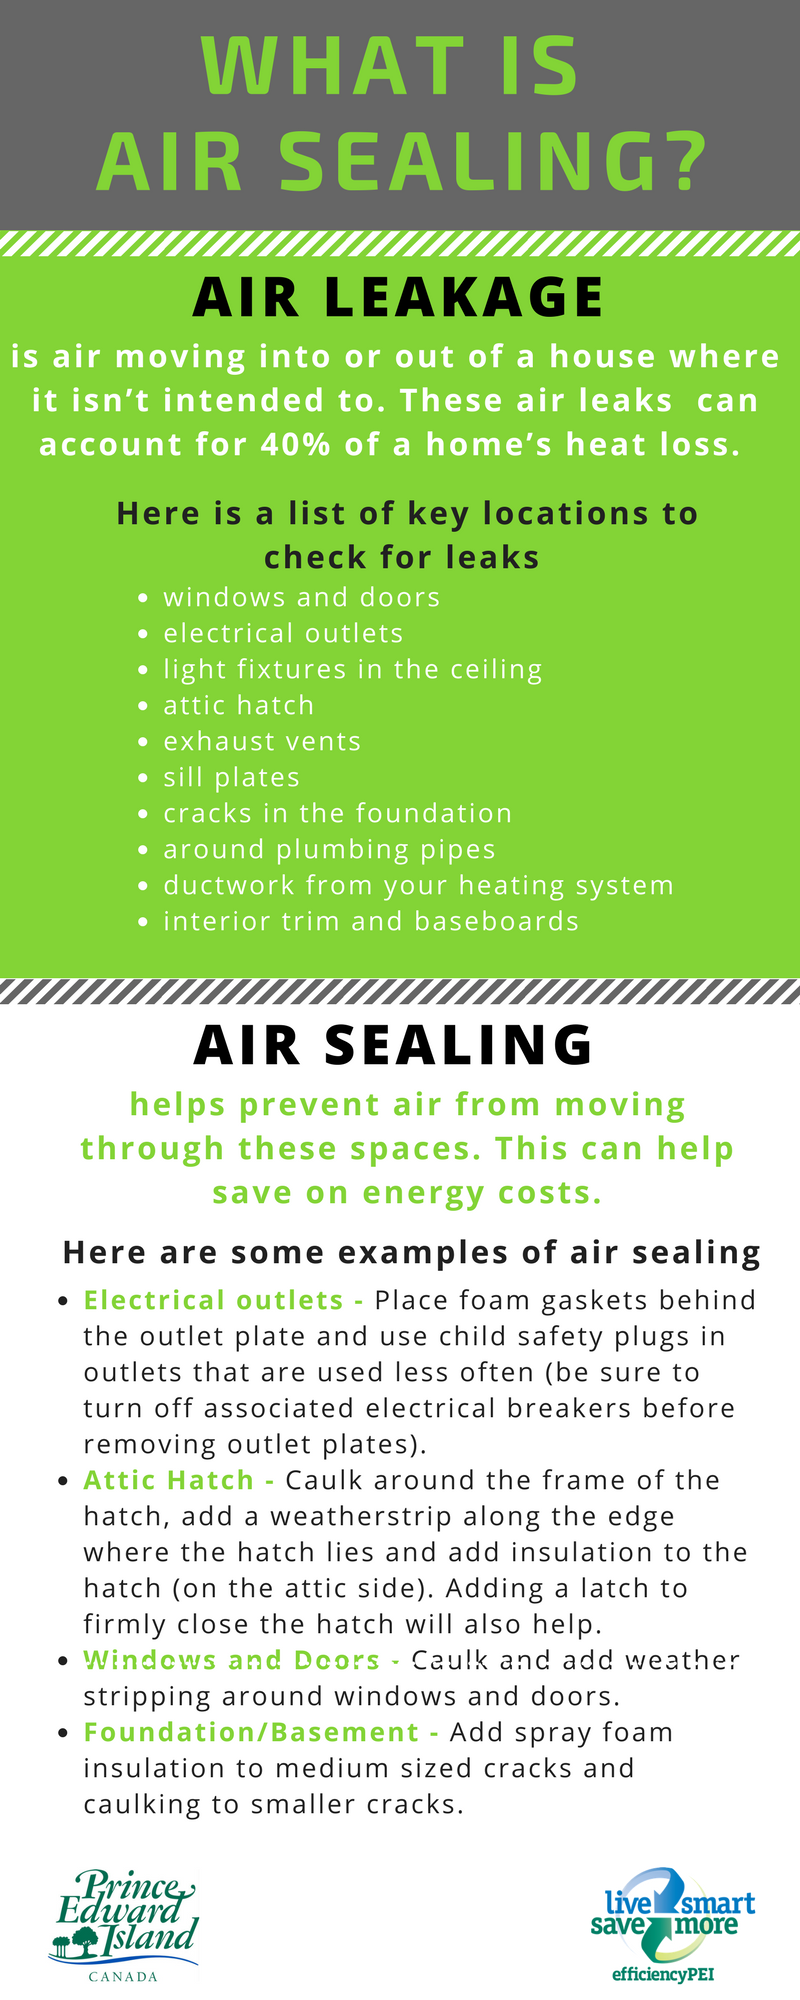 Infographic about Air Sealing